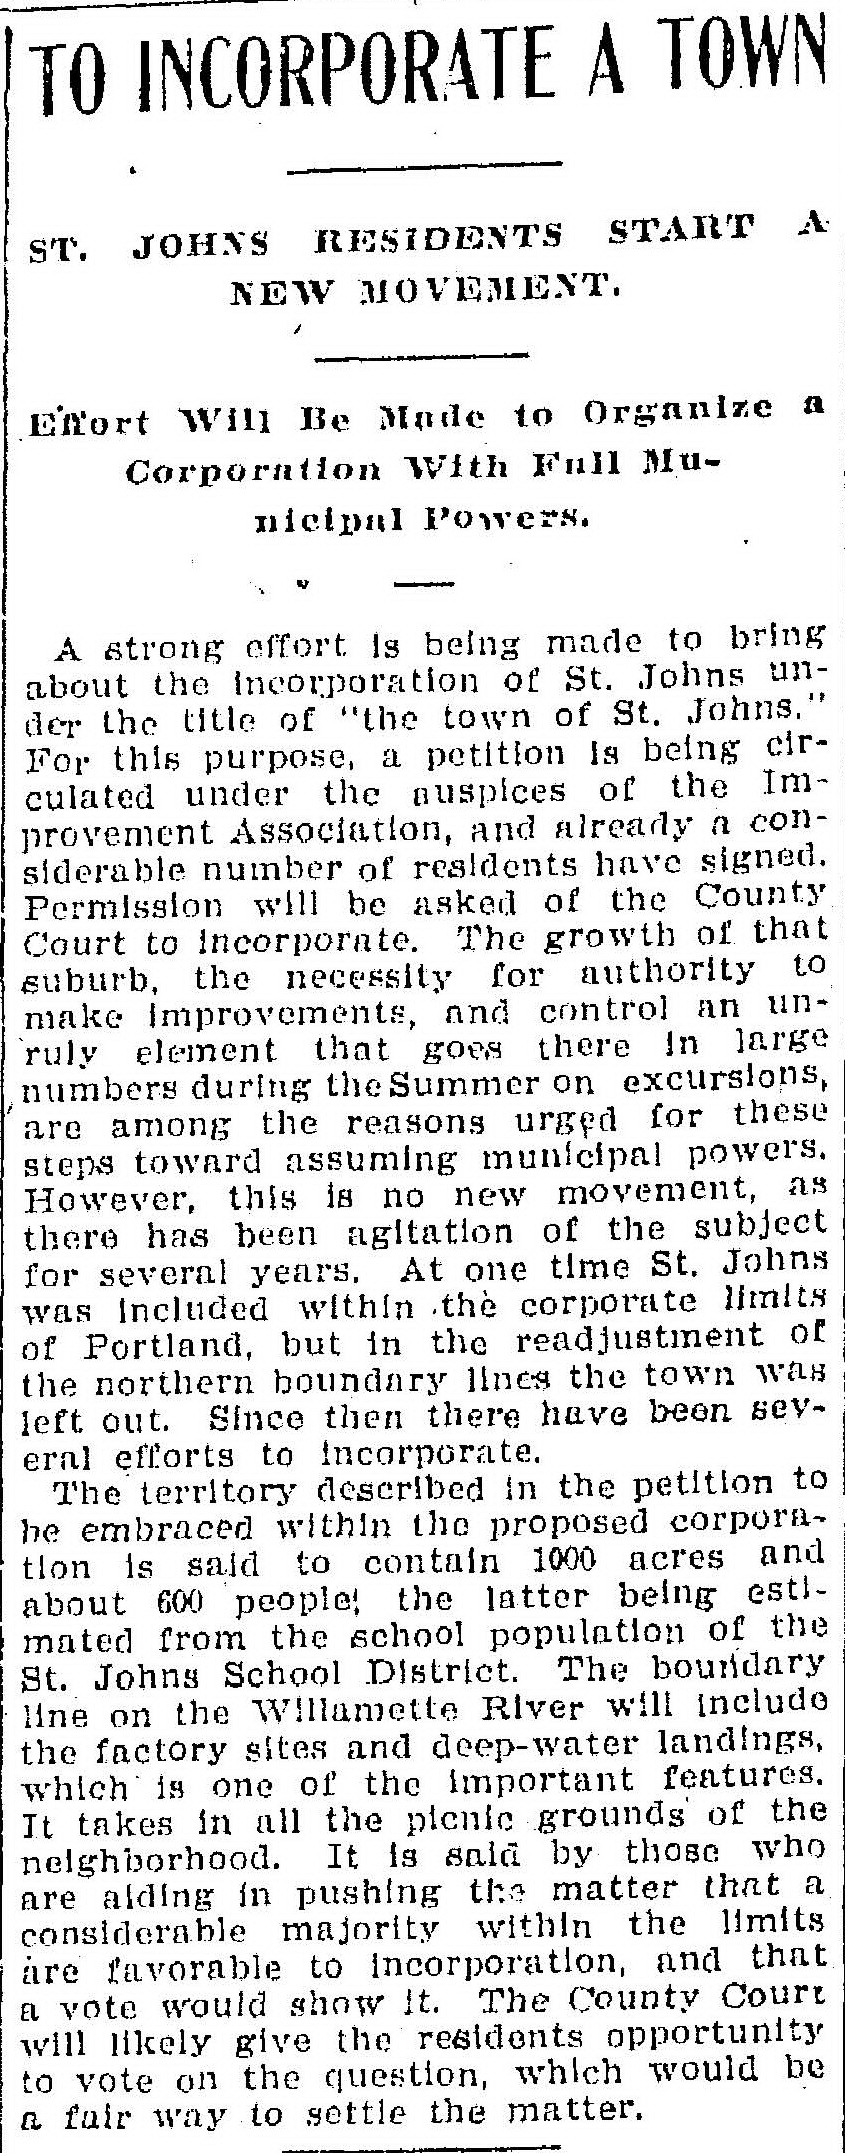 March 27, 1902 St Johns incorporation crop